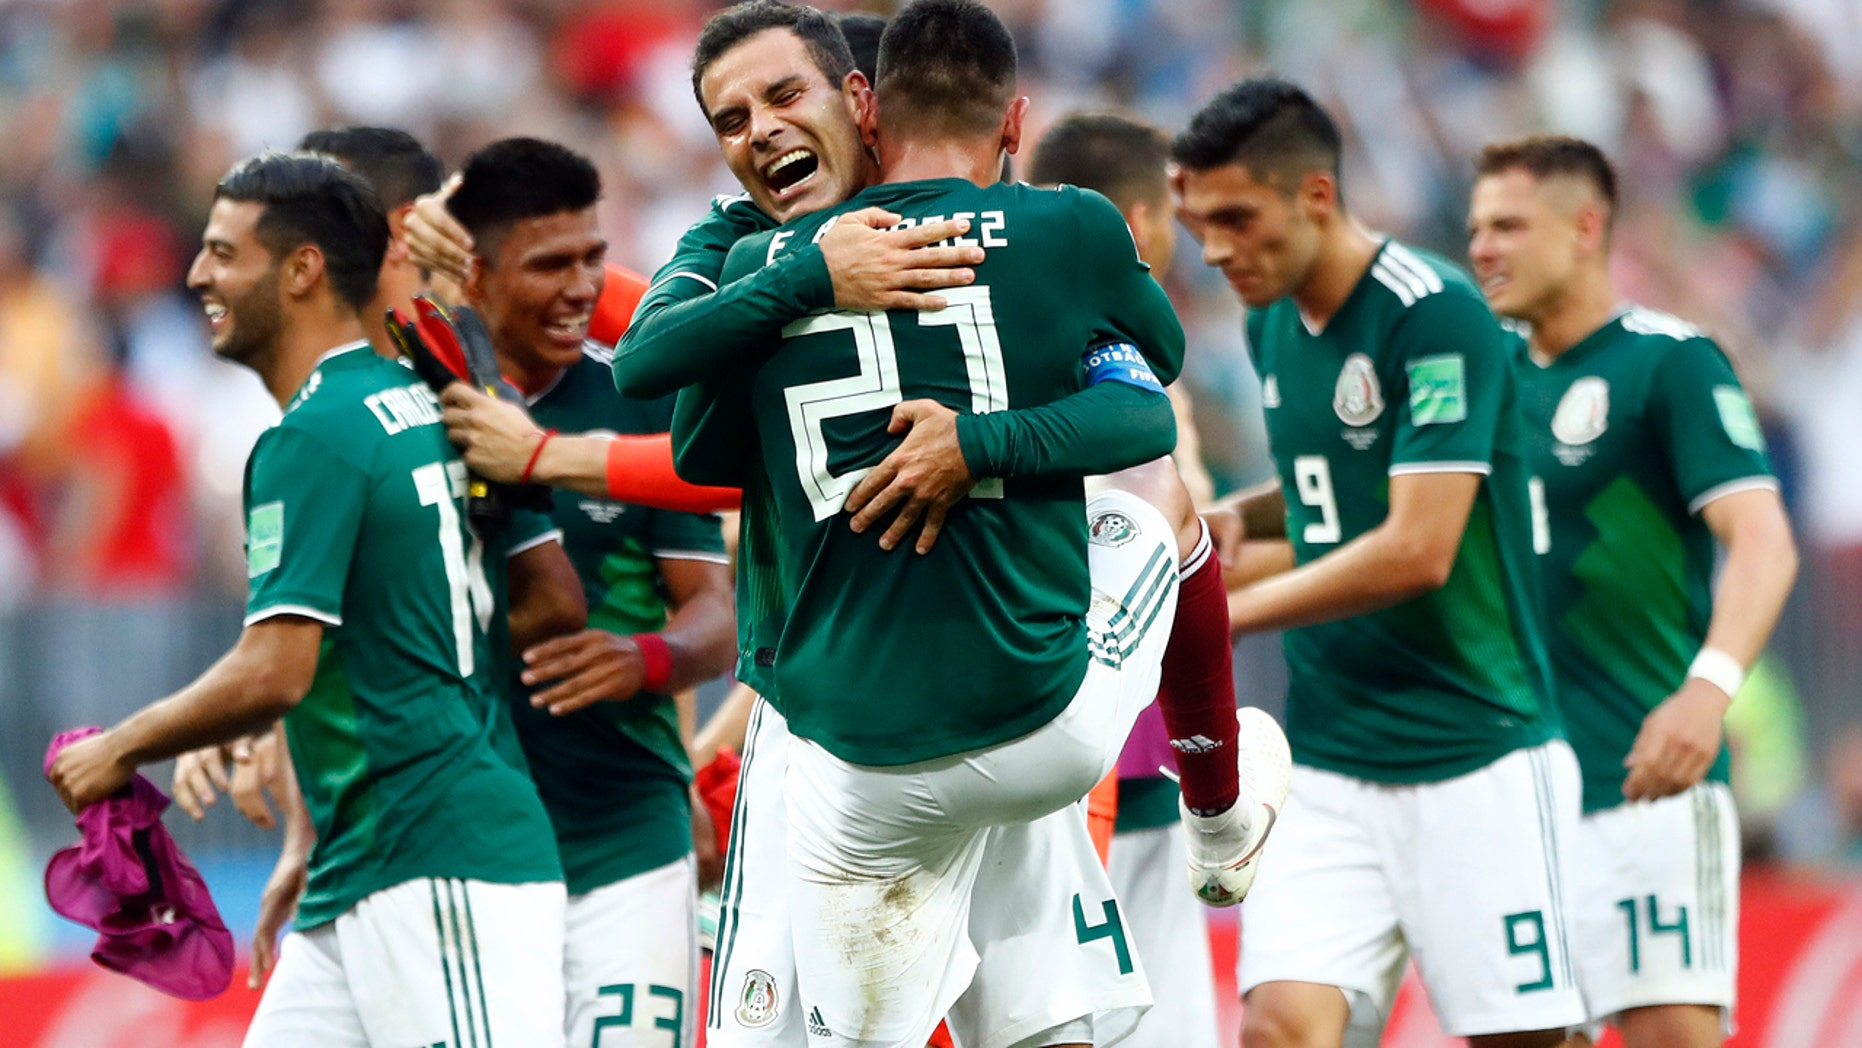 Mexico players celebrate after winning the group F match between Germany and Mexico at the 2018 soccer World Cup in the Luzhniki Stadium in Moscow, Russia, Sunday, June 17, 2018. Mexico won 1-0.